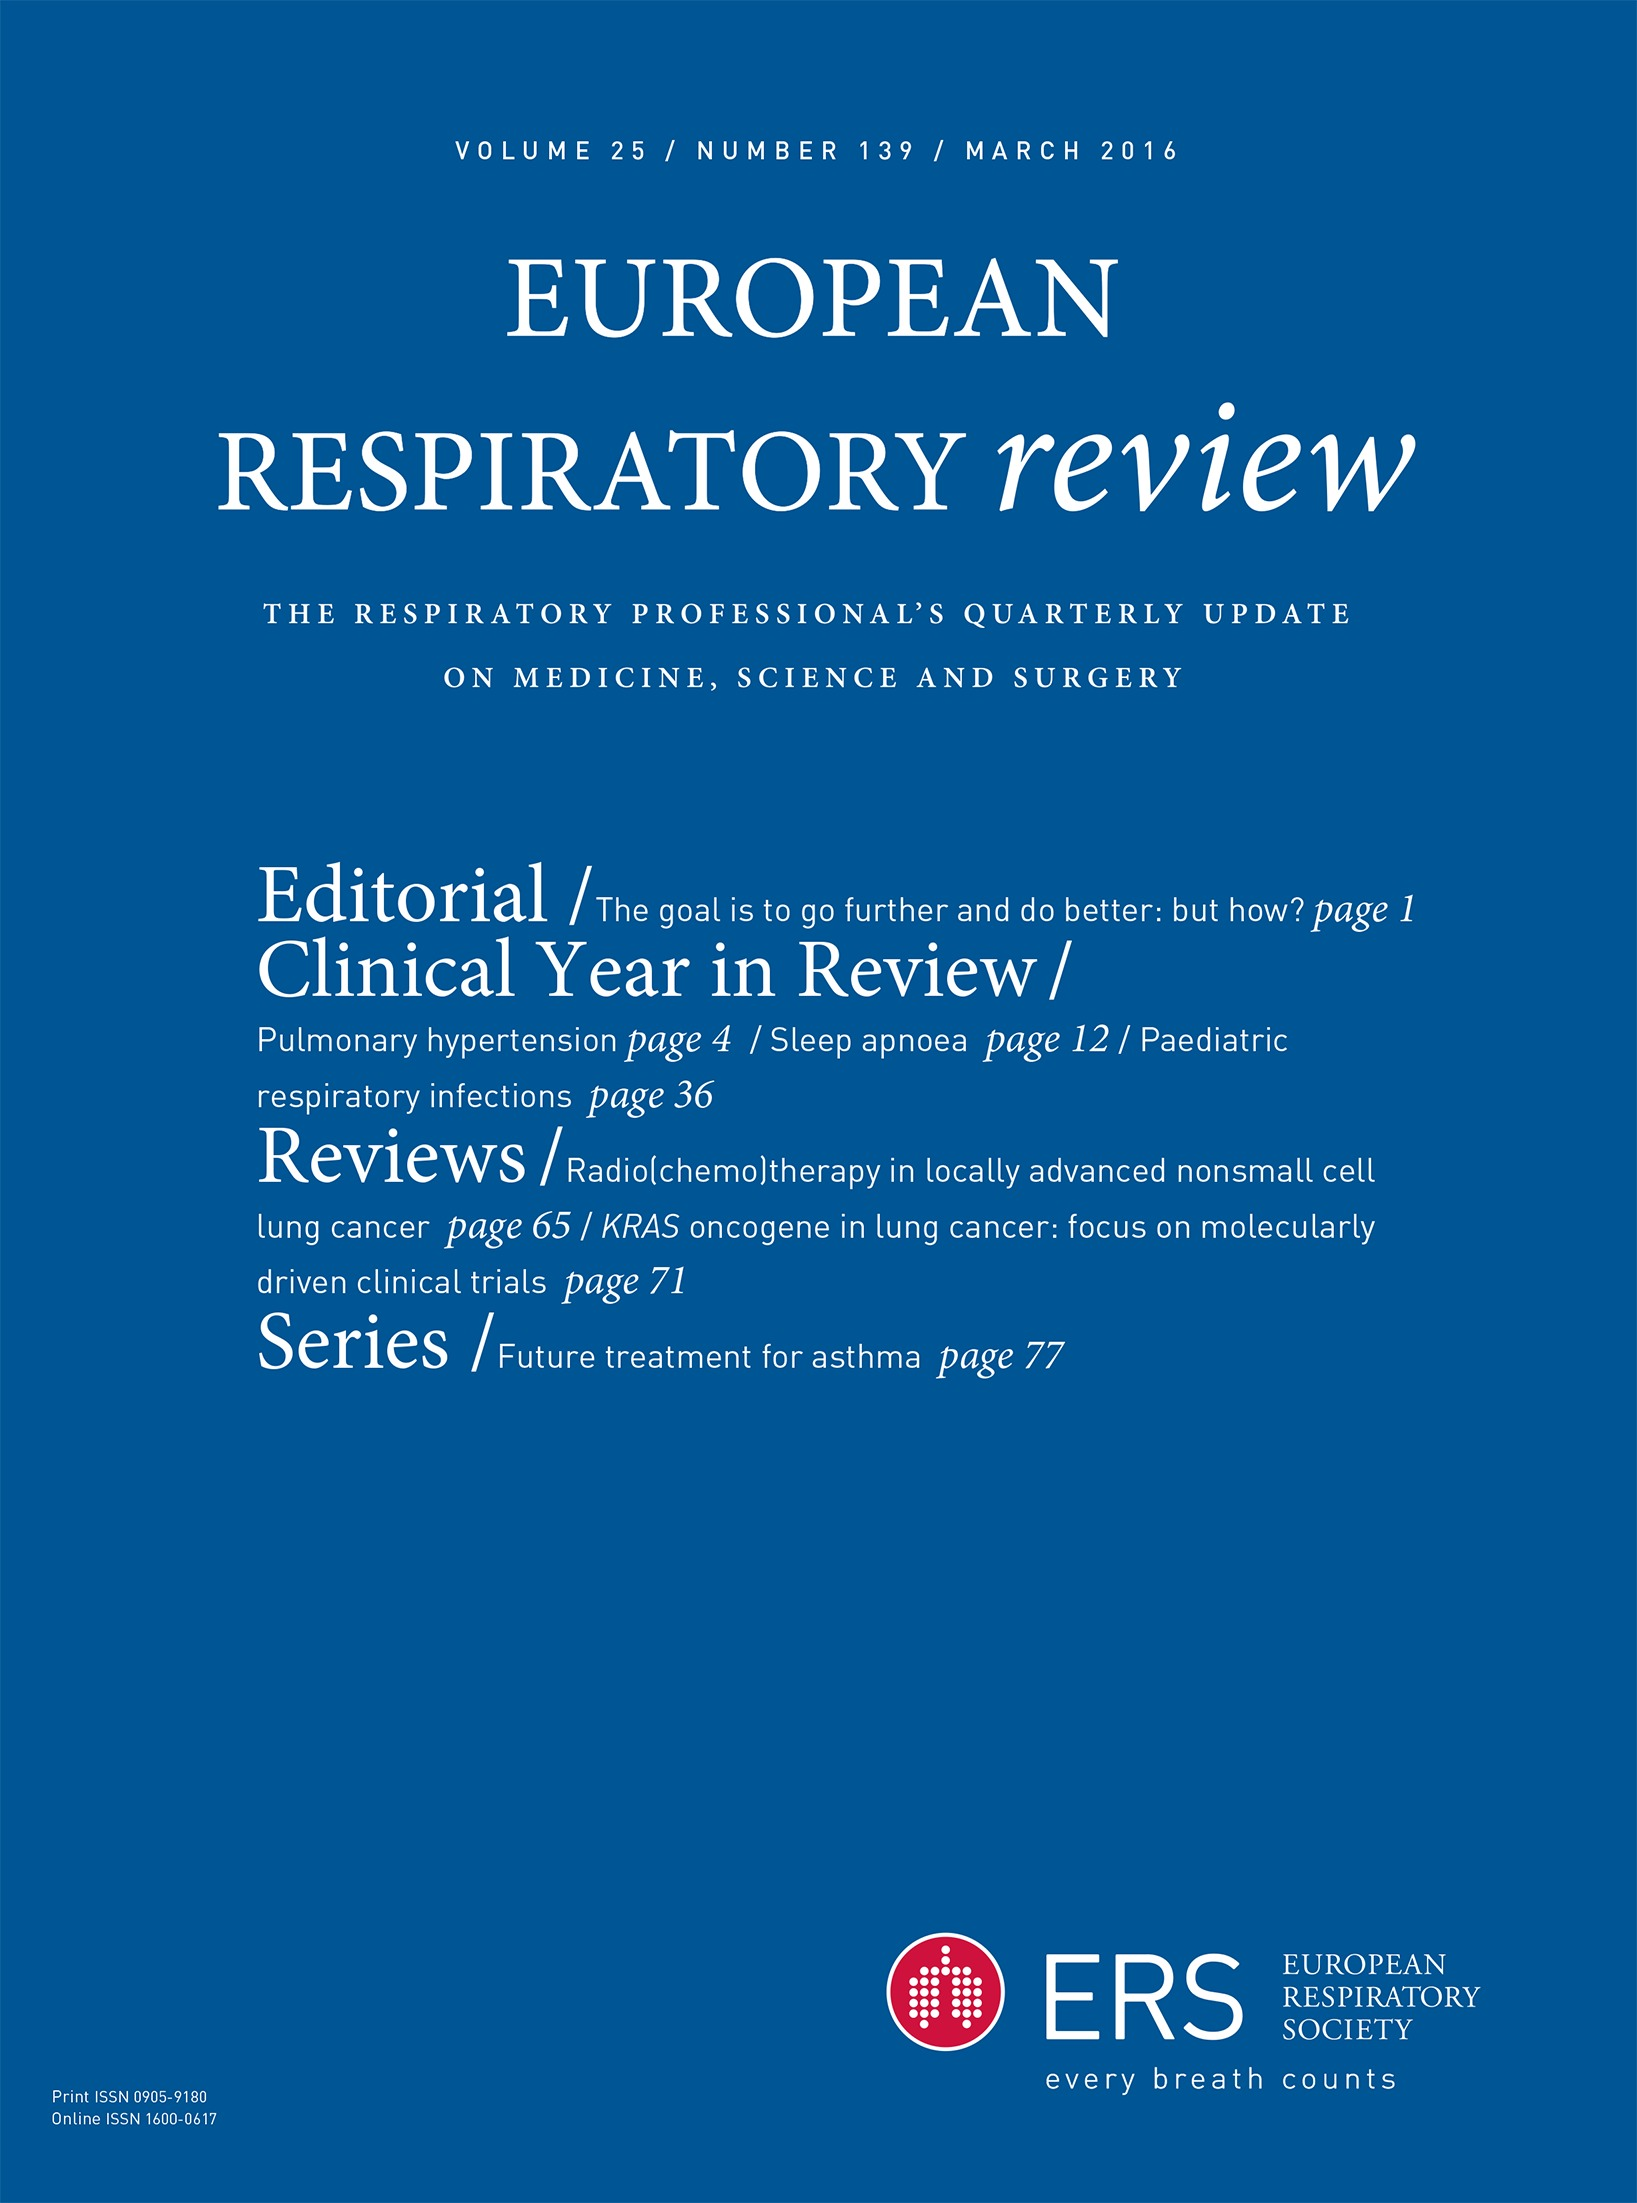 Sleep disordered breathing in childhood | European Respiratory Society